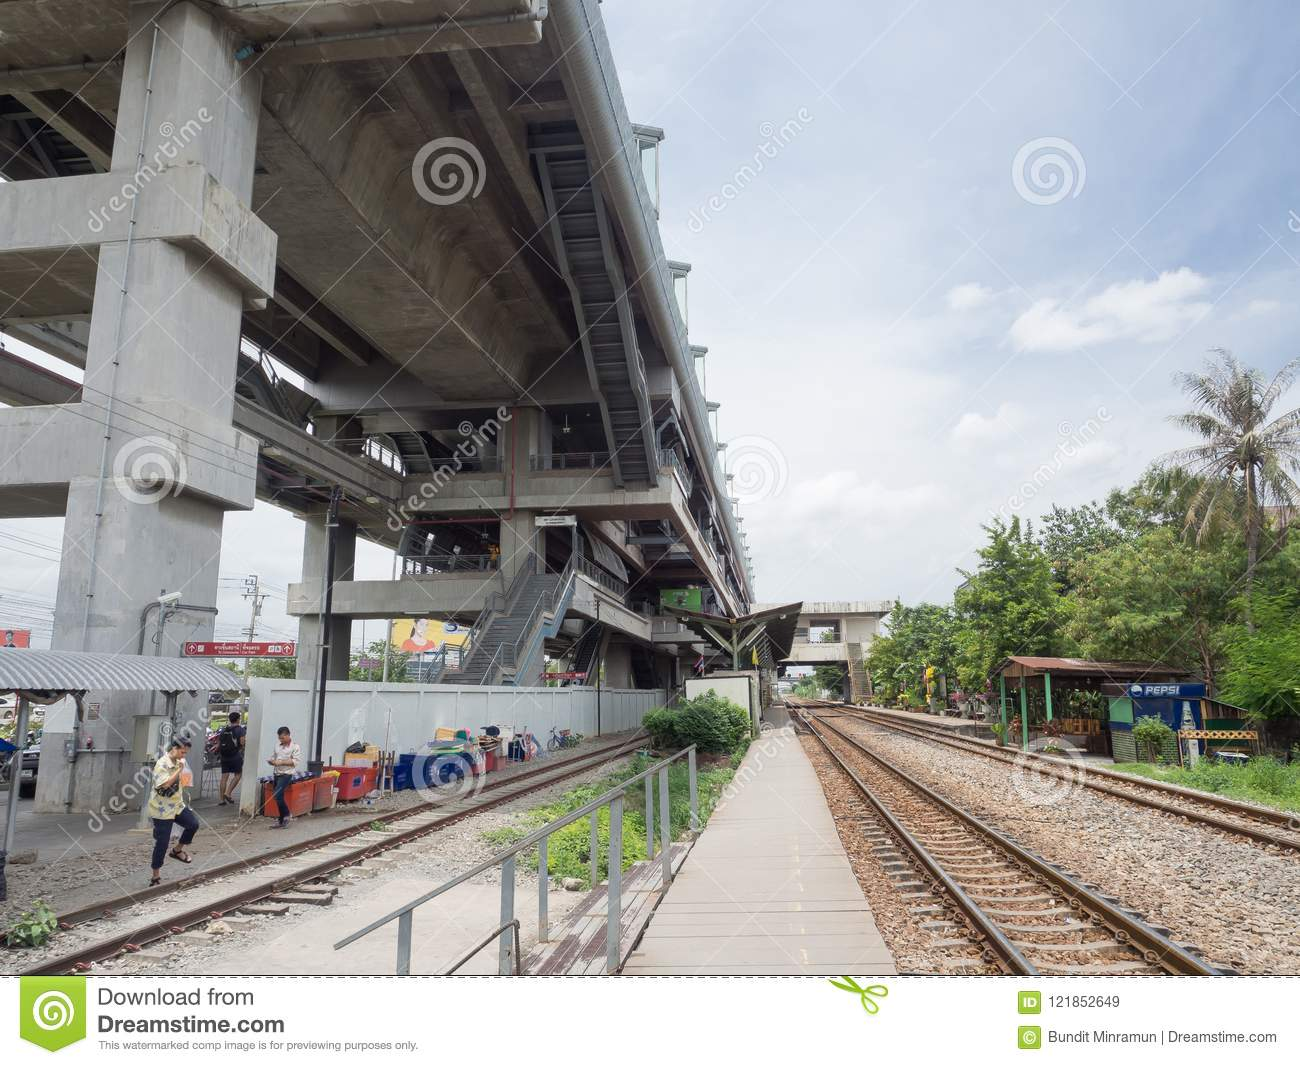 The Facade Building Of Lat Krabang Airport Rail Link Station Is High Speed  Rail Line To Inner Bangkok. Editorial Stock Image - Image of link,  platform: 121852649